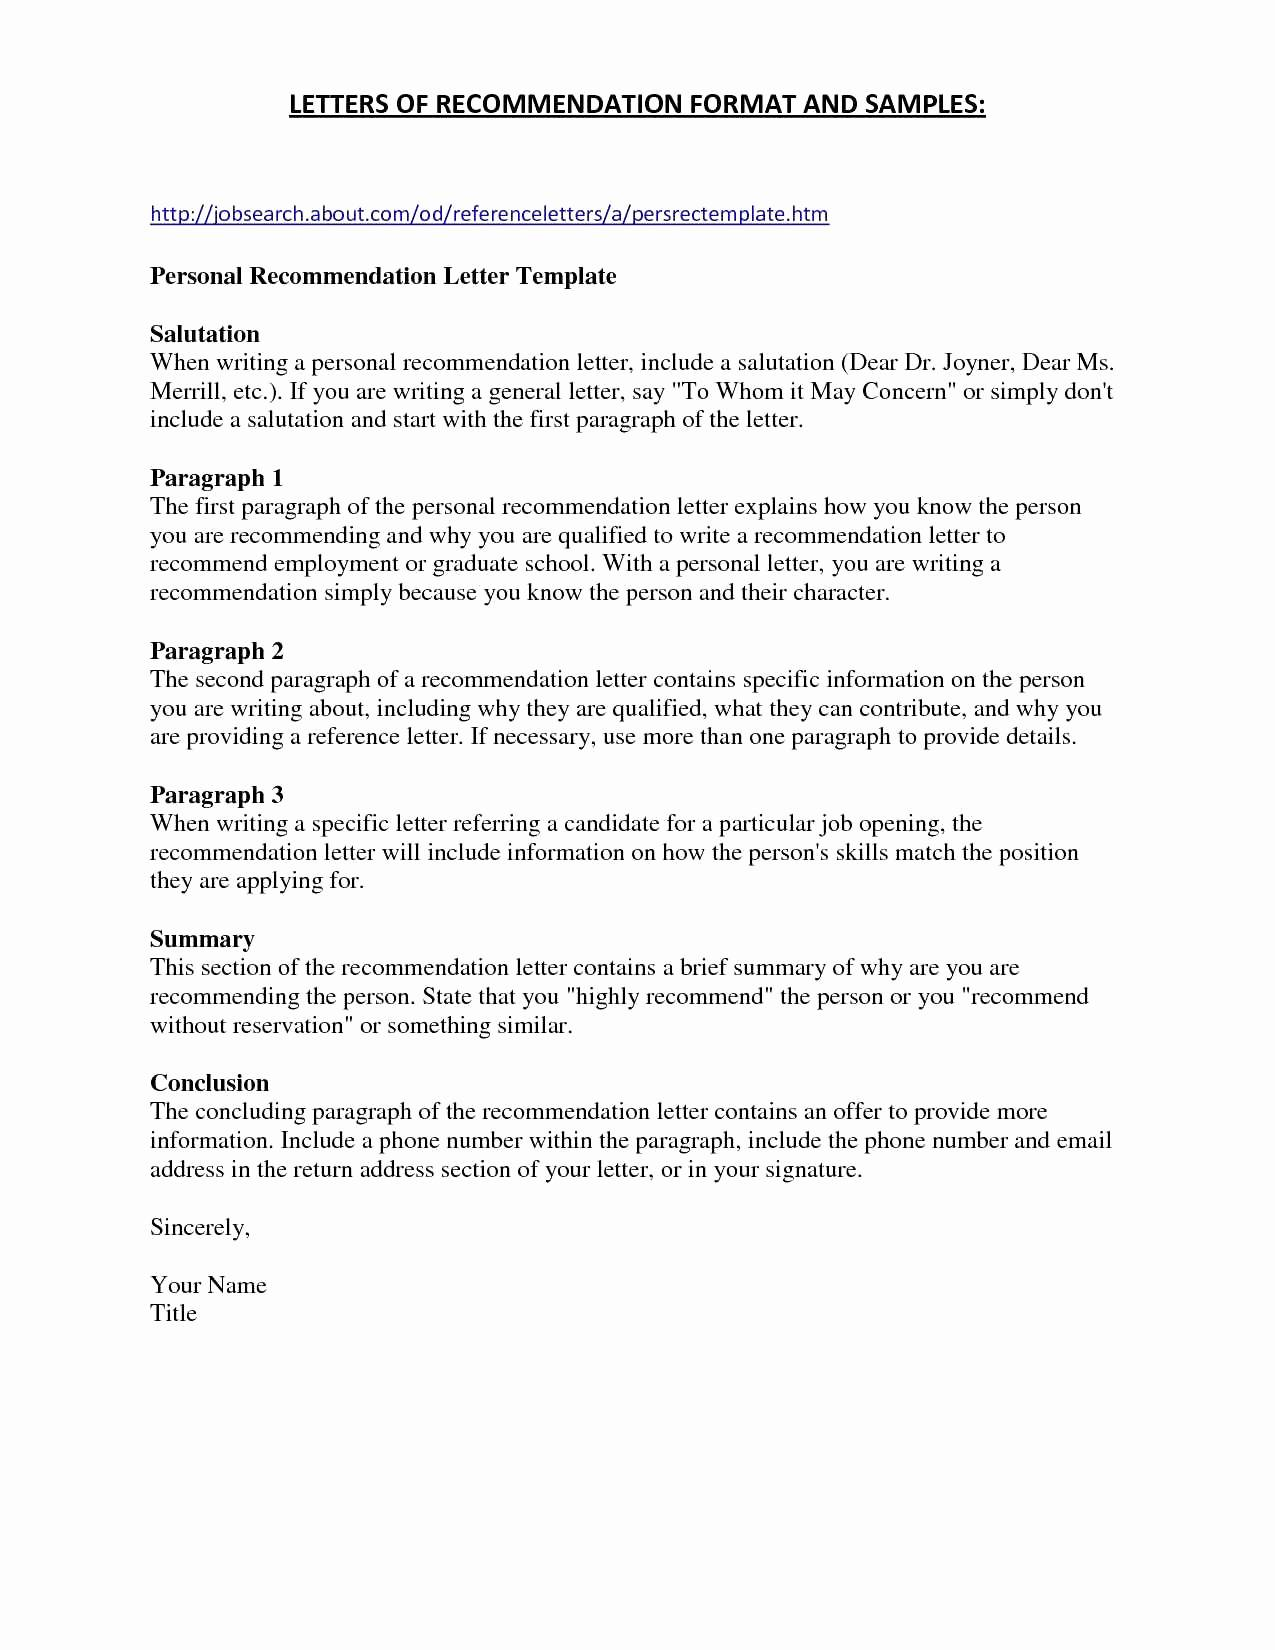 Phd recommendation letter template collection letter for Candidate application form template